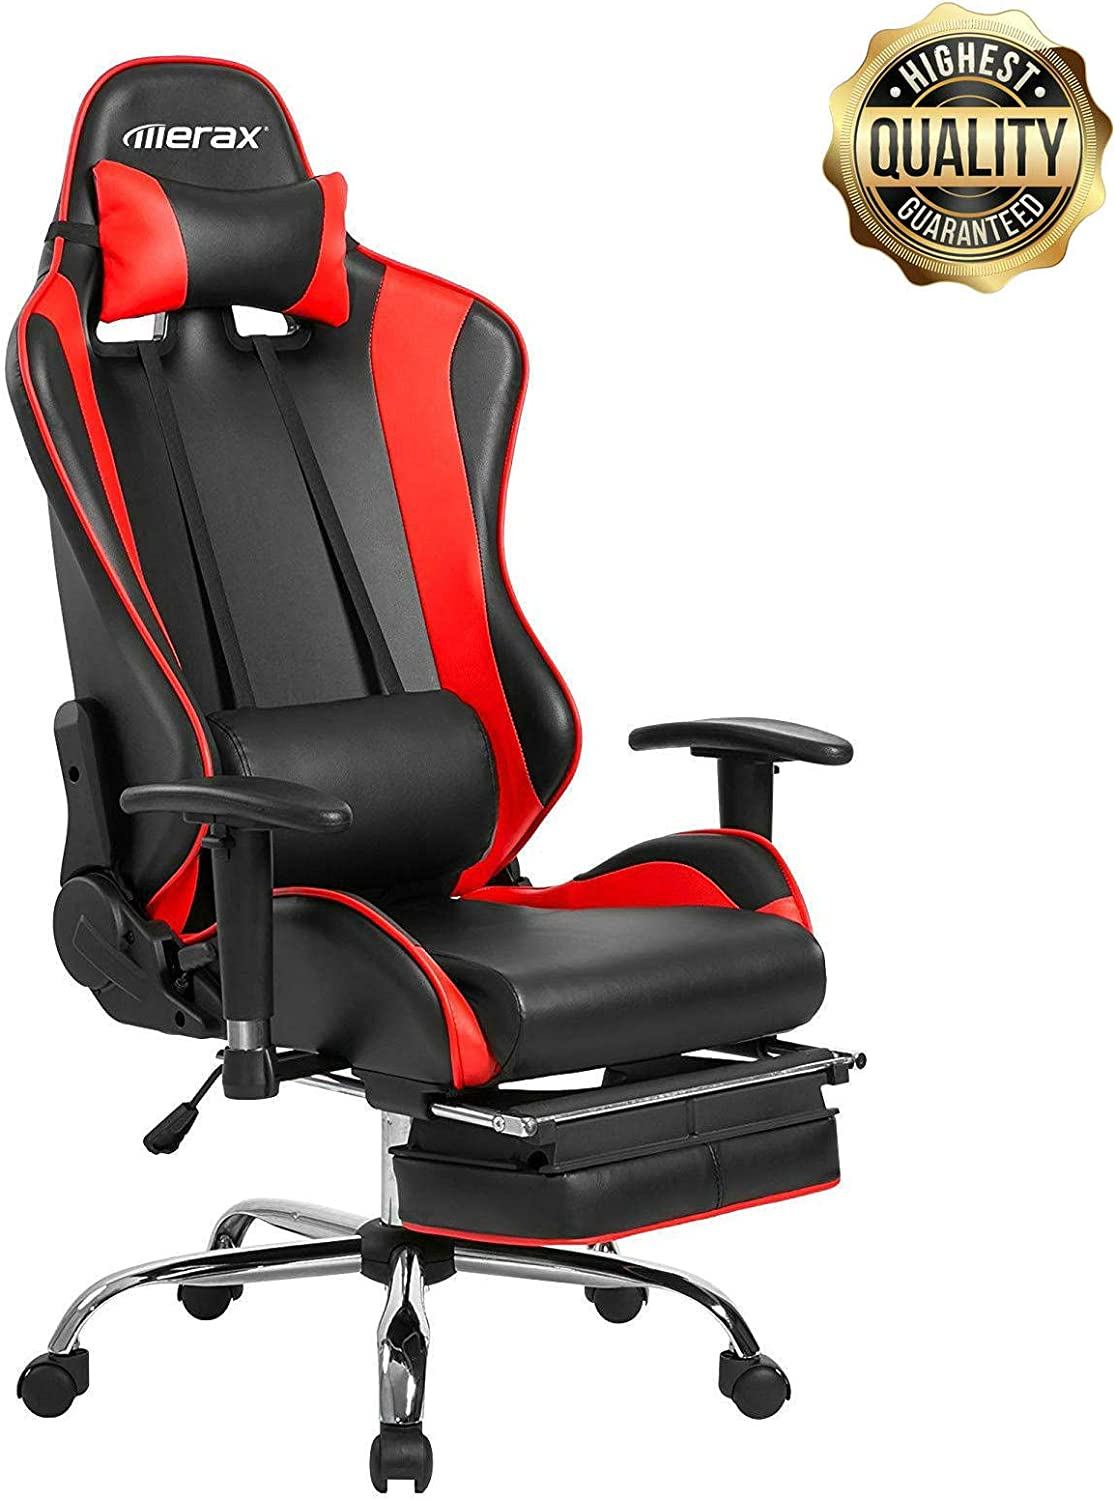 SOREKI Ergonomic Gaming Chair Racing Style High Back Computer Game Chair and Seat Design Features PU Leather with Footrest